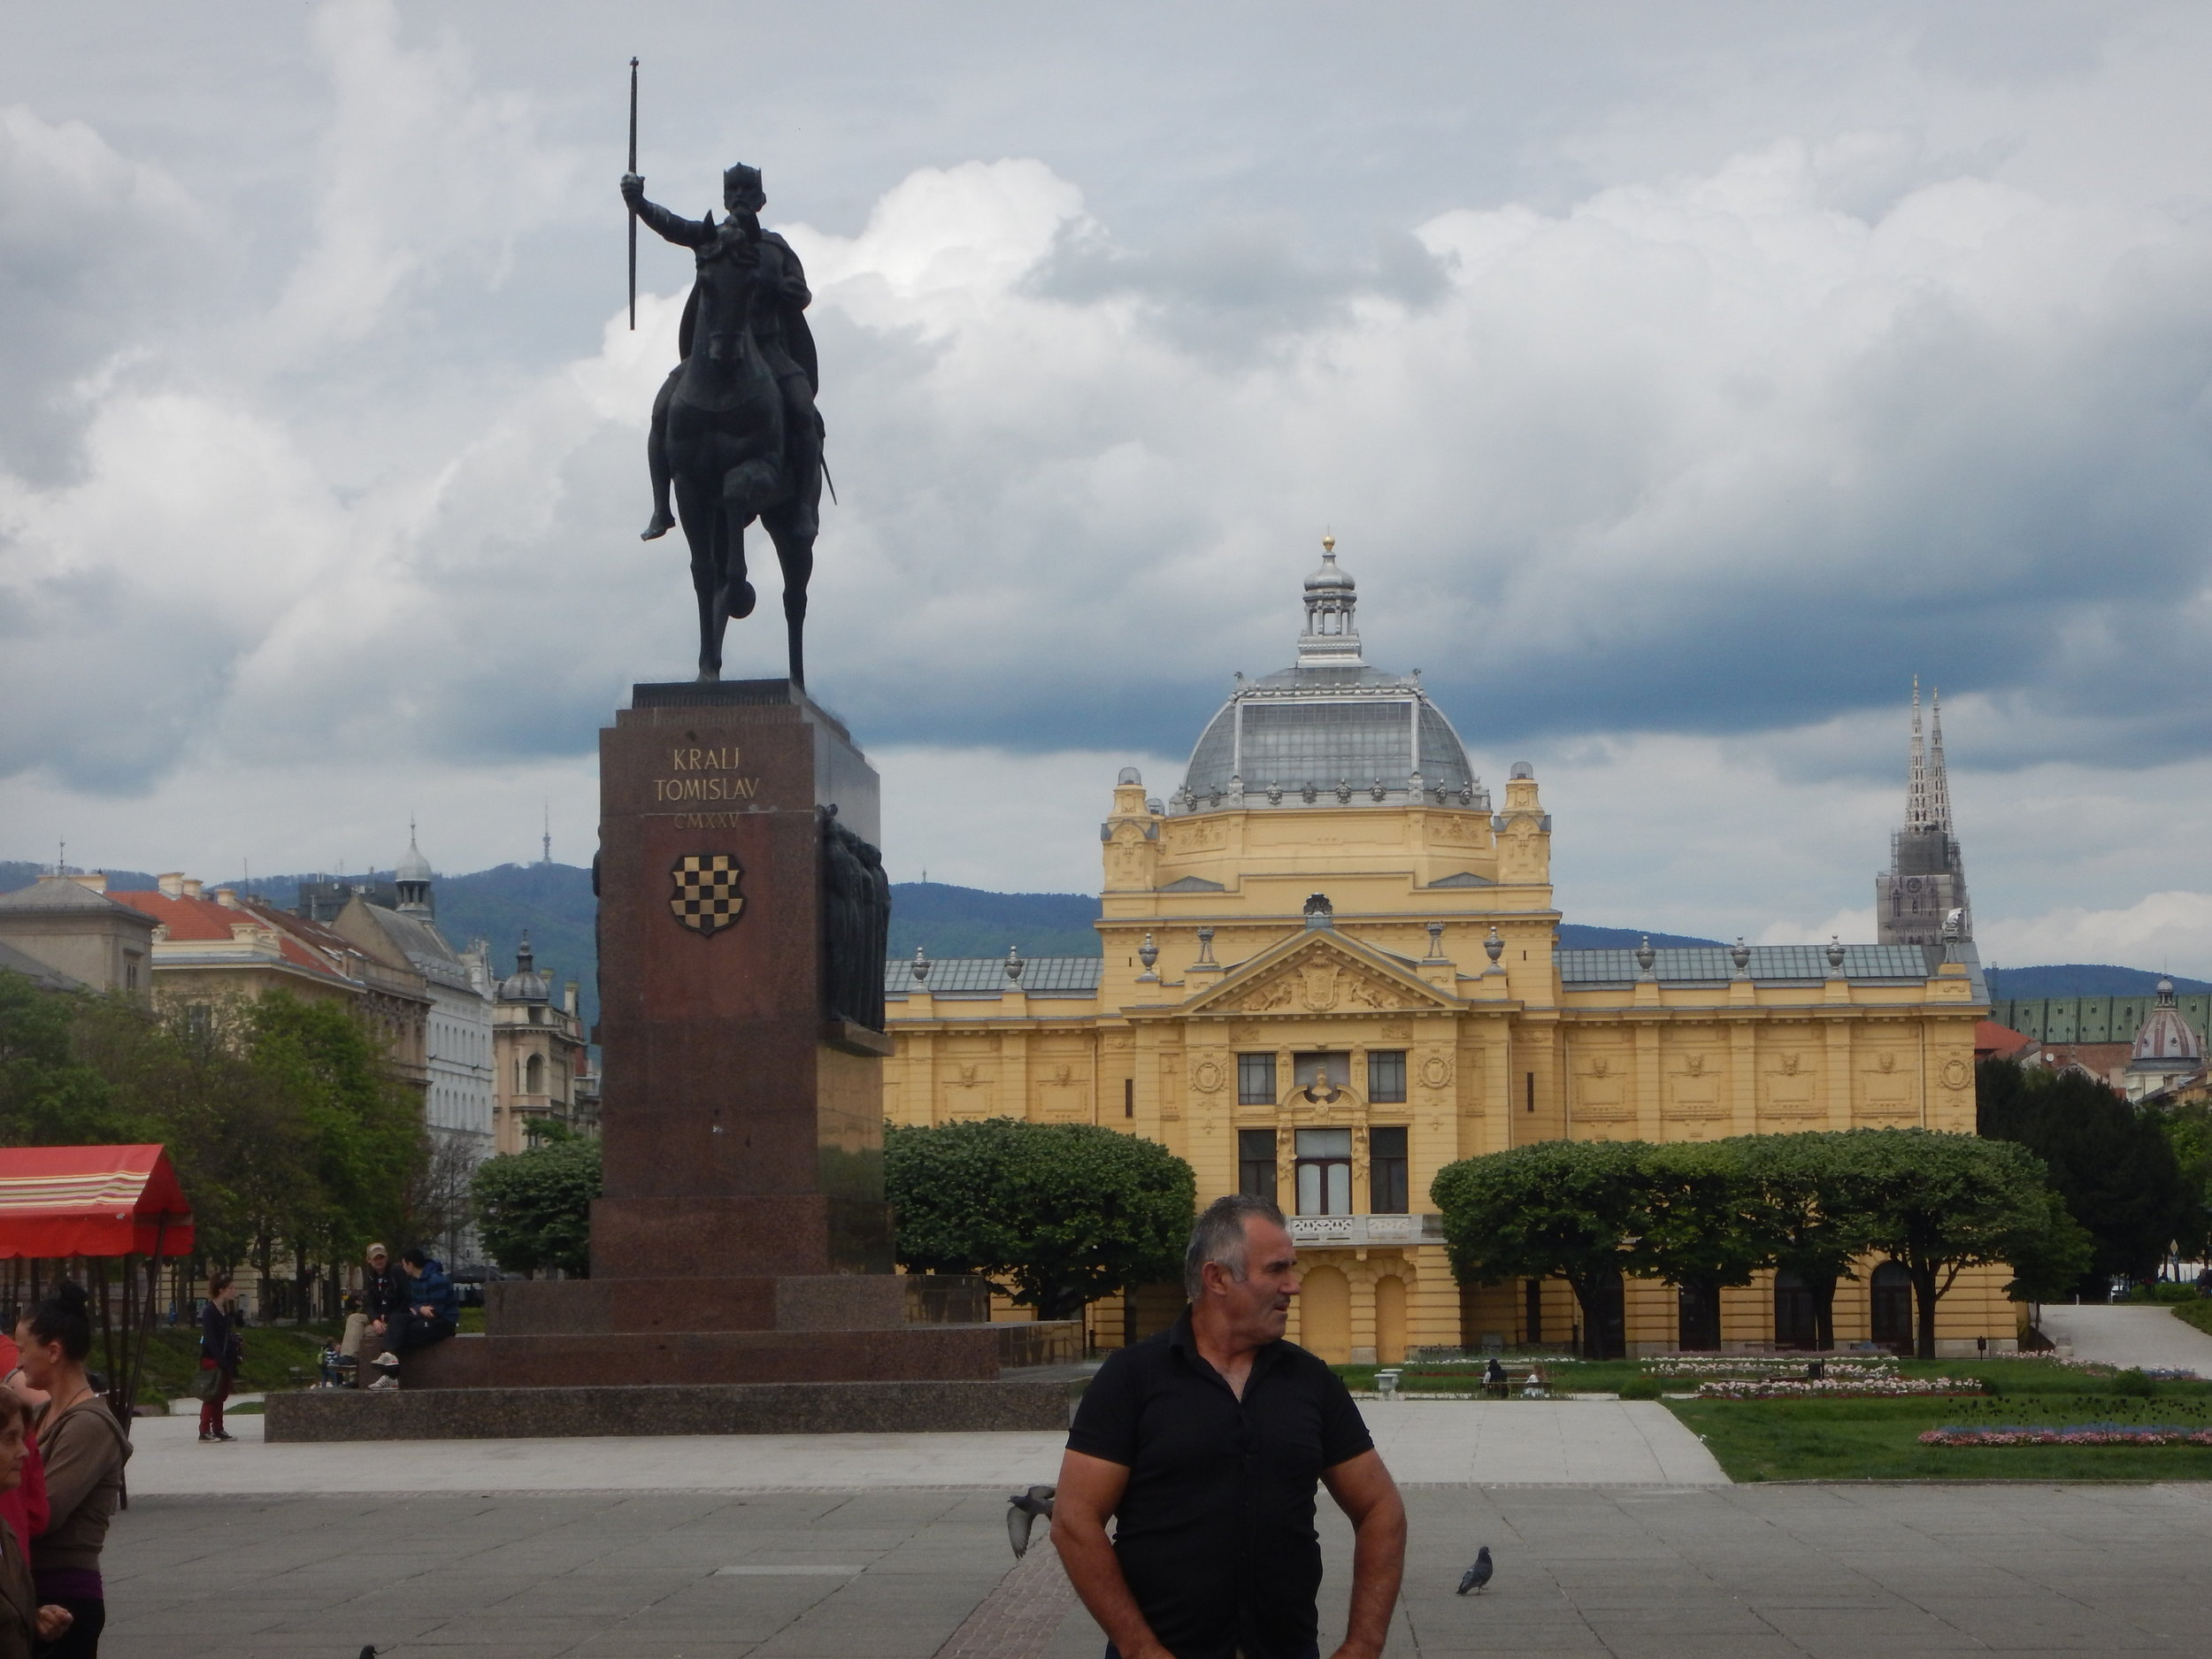 Downtown Zagreb, horizon shows tv transmitter, Tomislav monument, gorgeous old public building in park setting and cathedral spires.